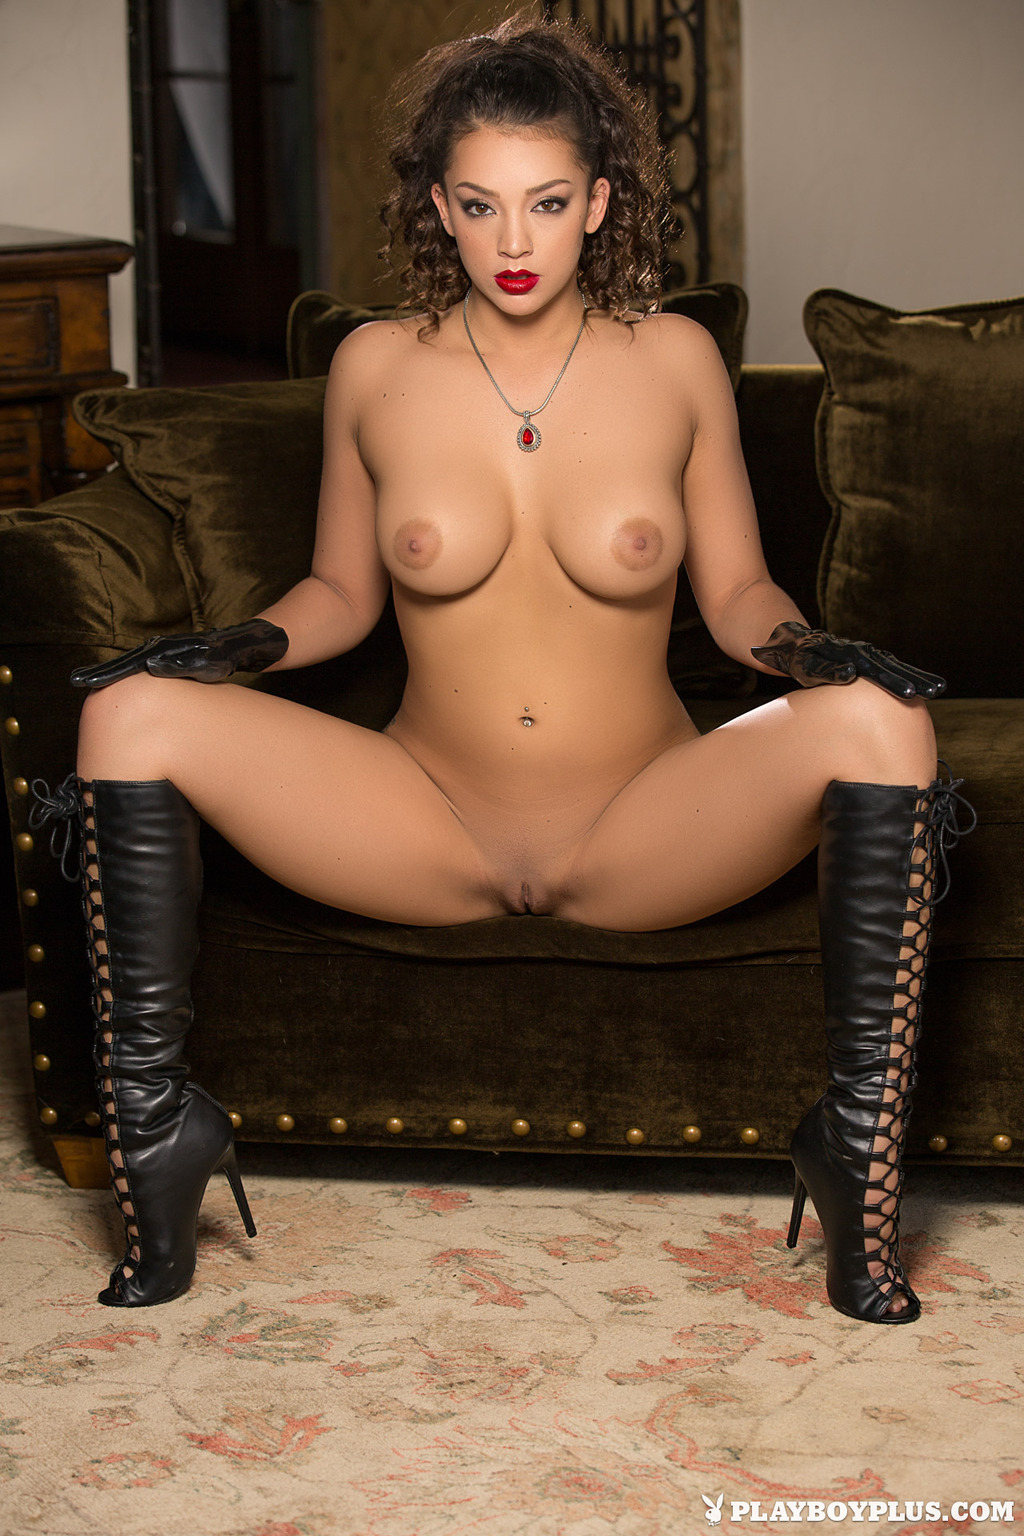 Busty Playboy Babe Kelsi Shay In Sexy Boots 06